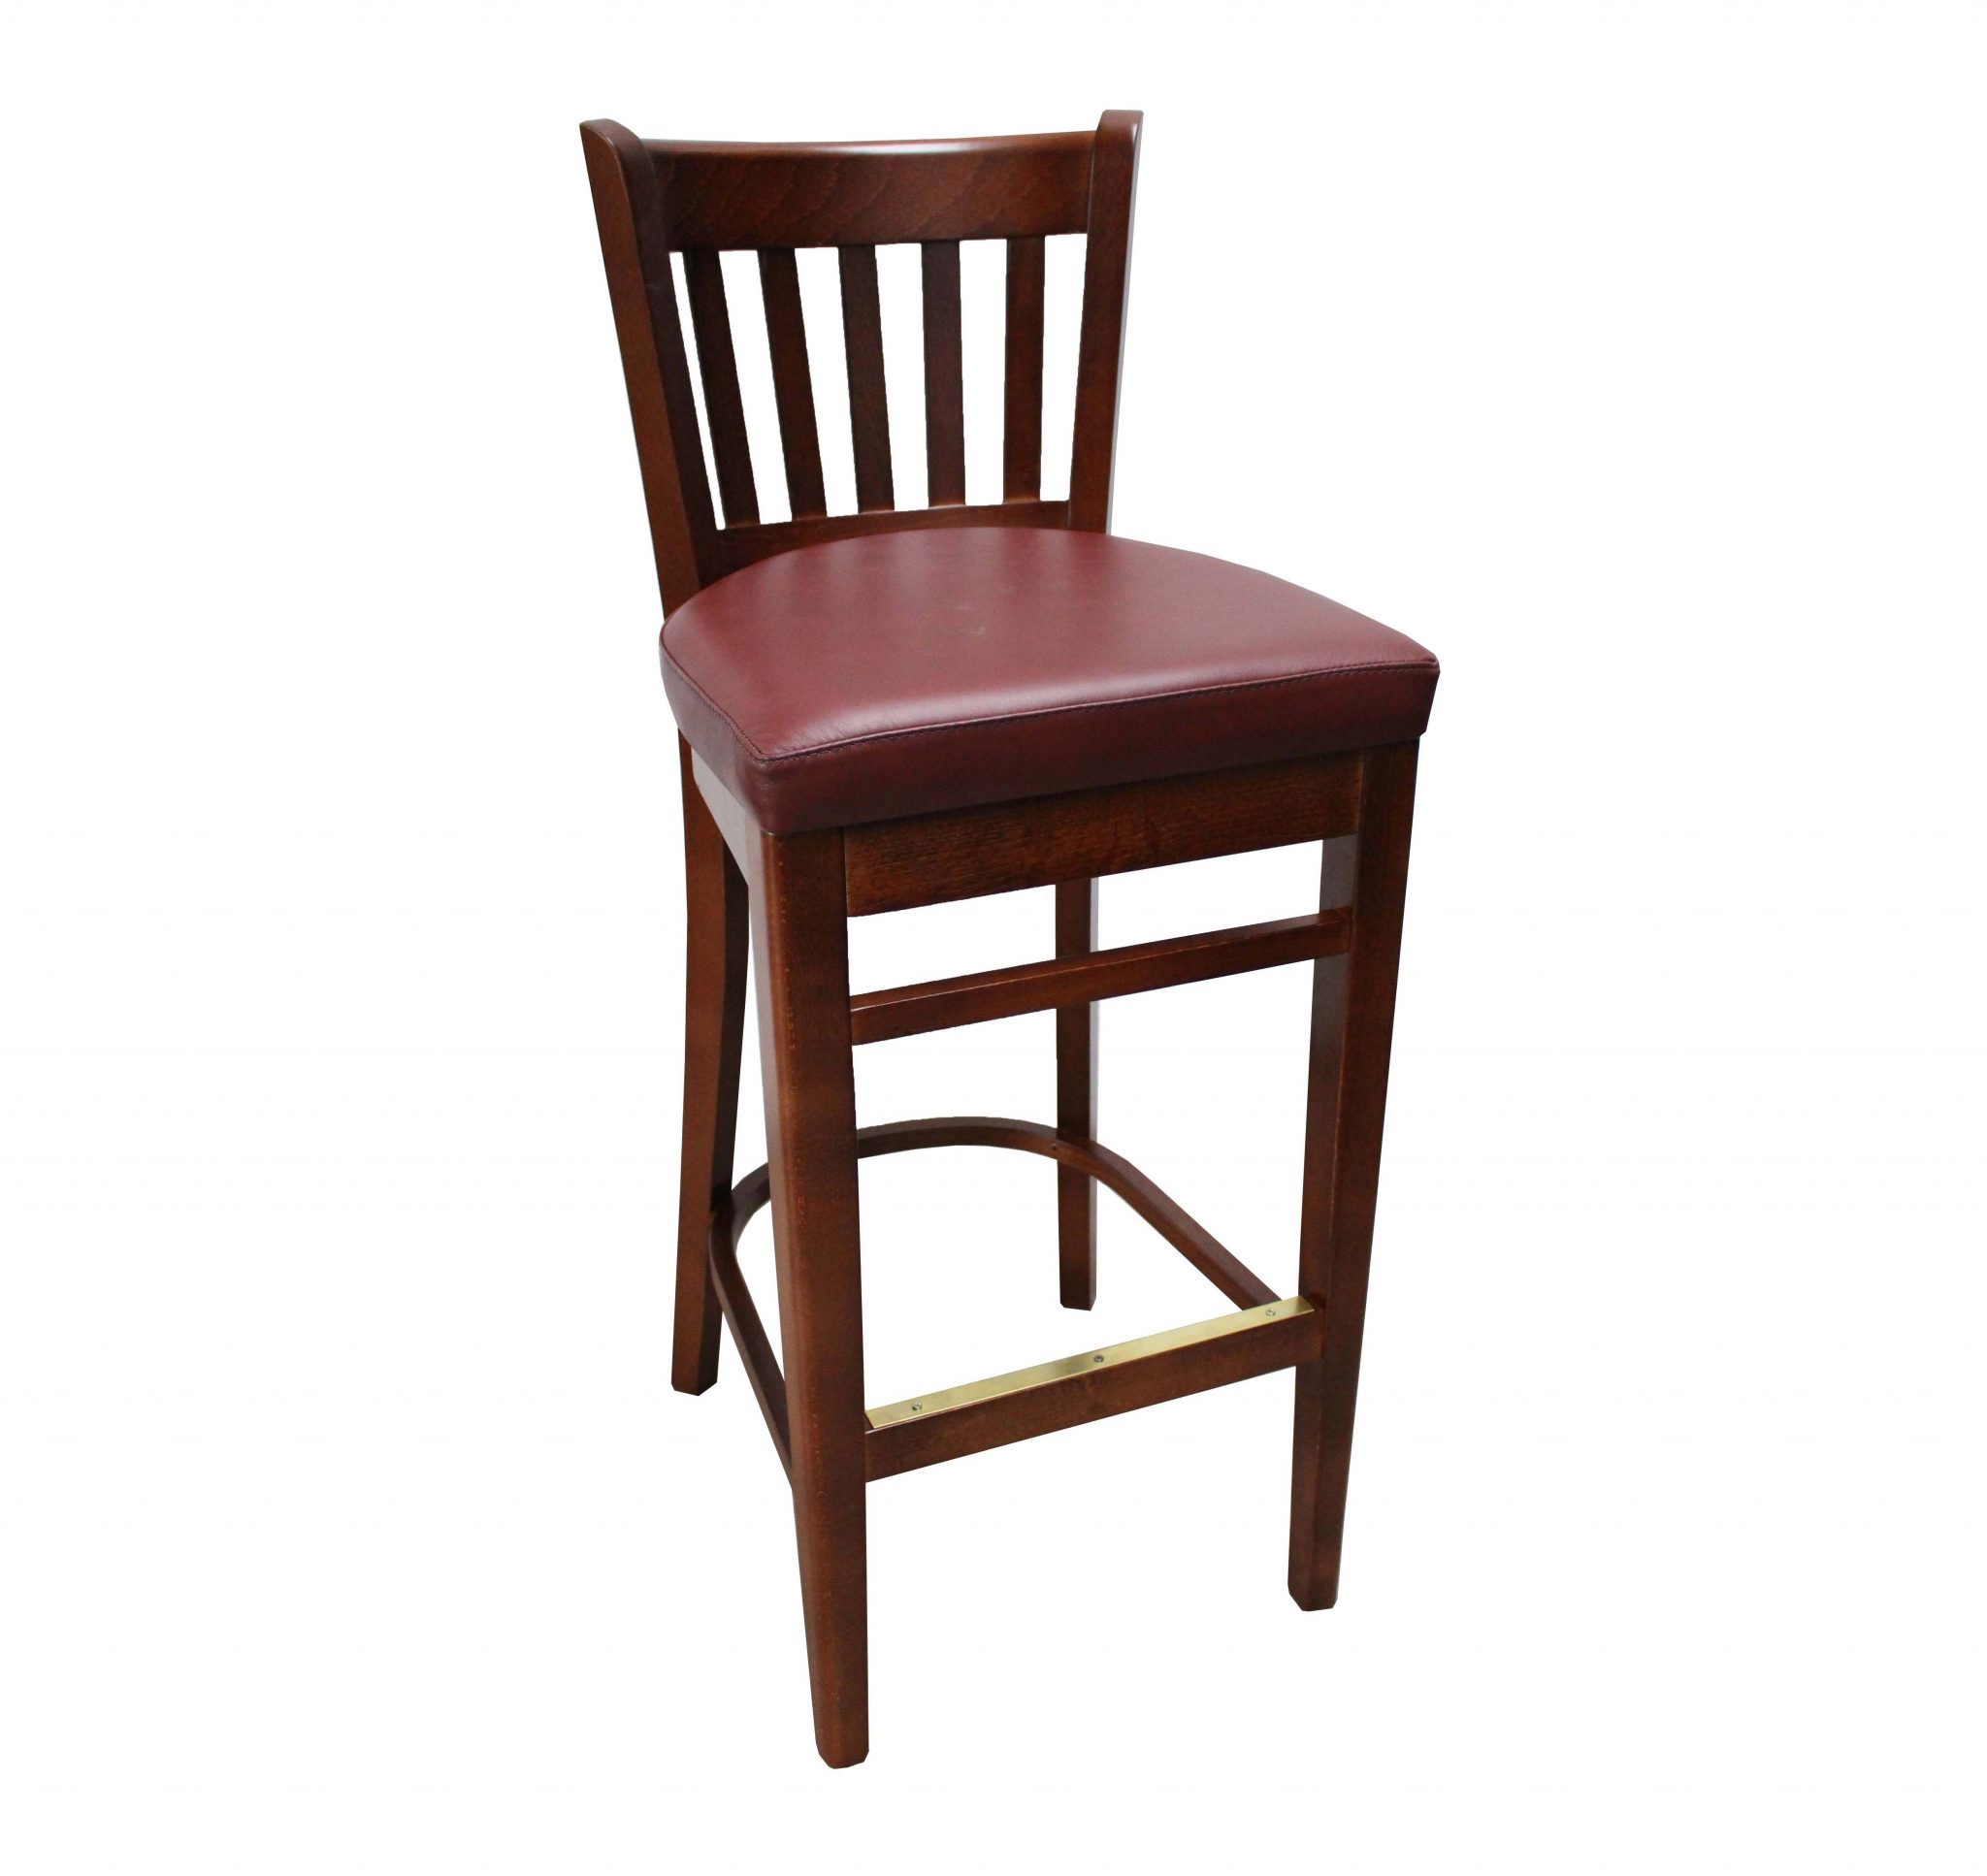 Mcguigan furniture houston bar stool with timber